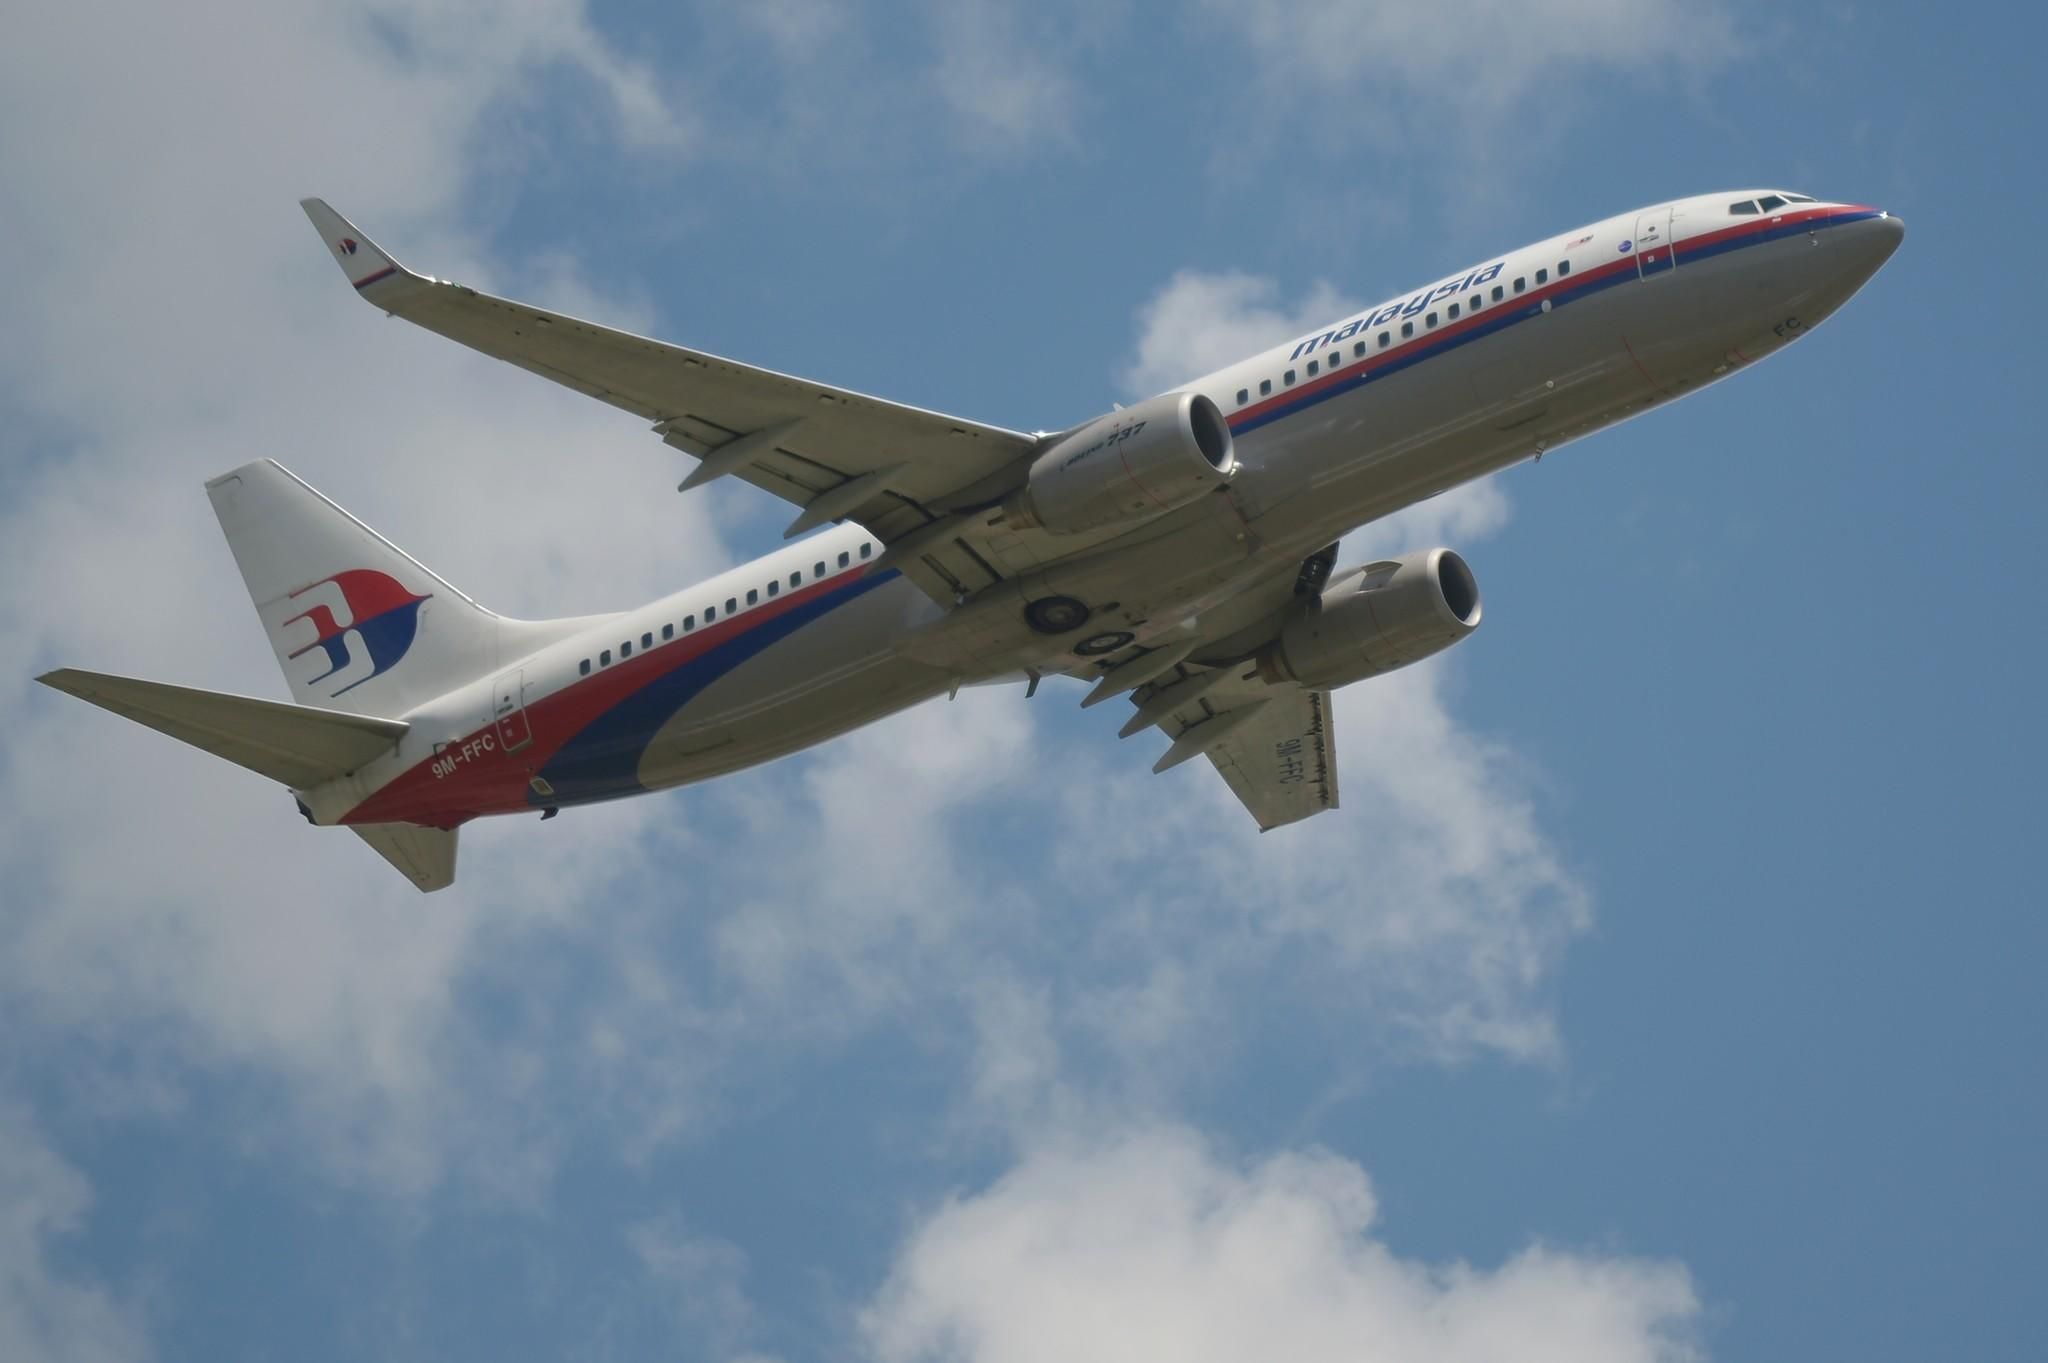 Missing Plane Malaysia Airlines